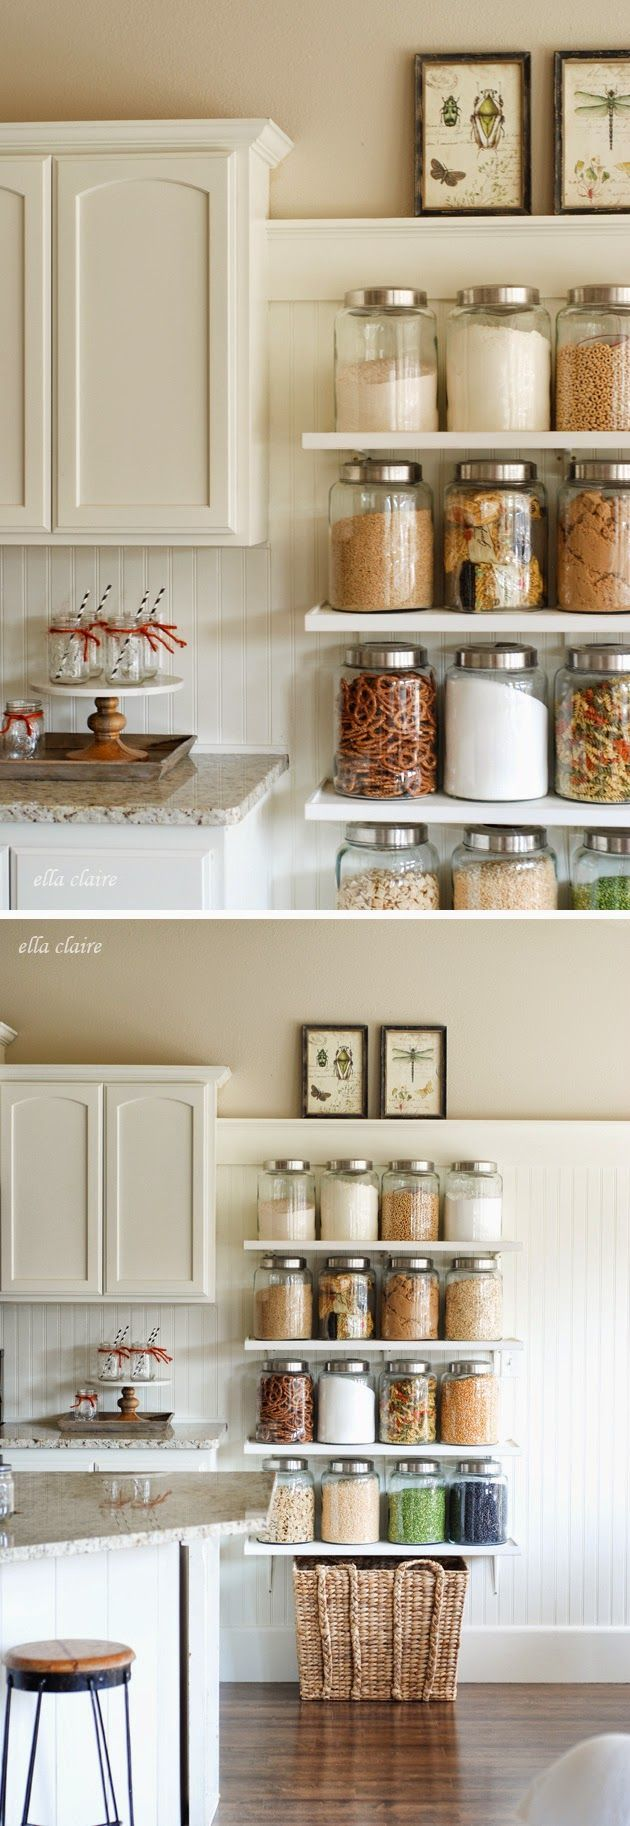 Country Store Kitchen Shelves - creating pantry space in the kitchen by adding shelves and glass canisters with seals. Swoon!